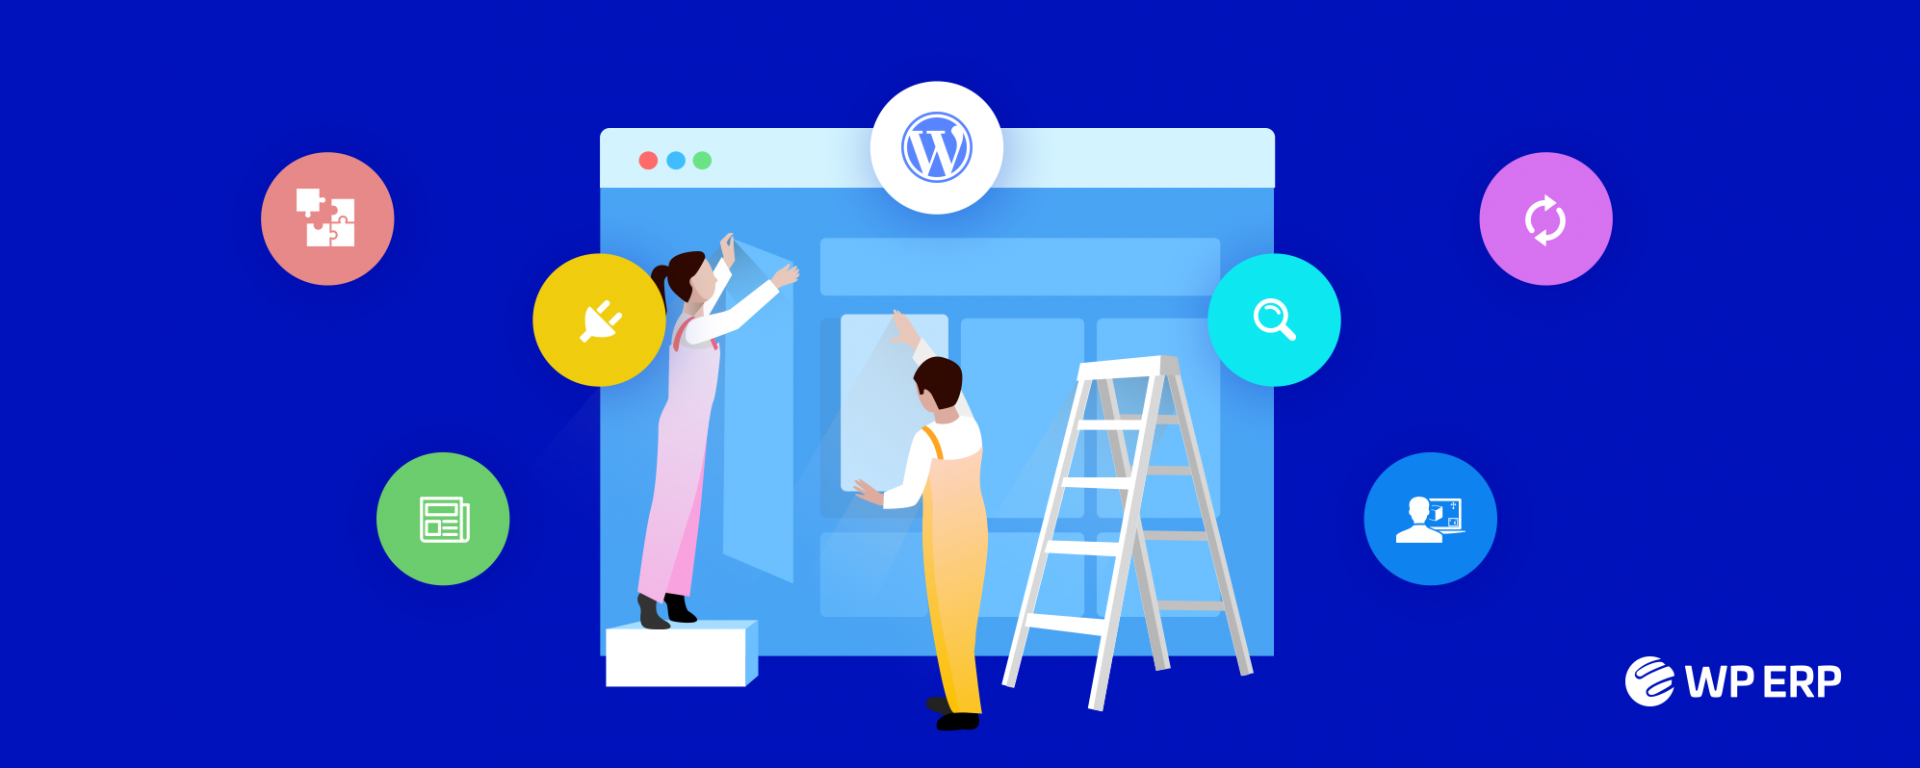 Why built WordPress Business sites